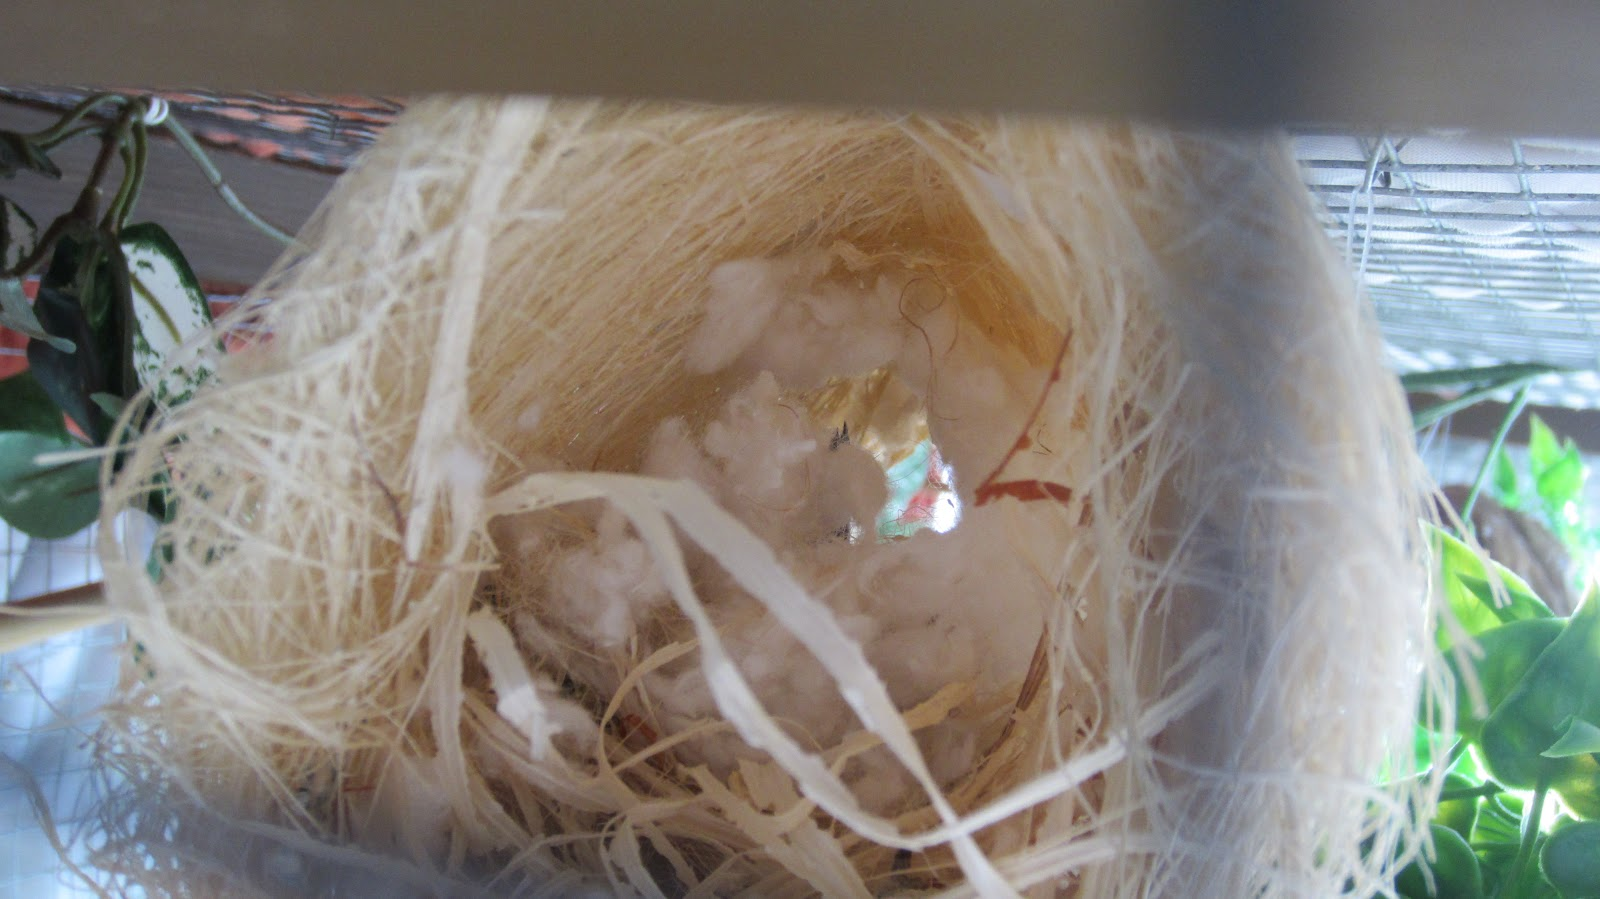 Cordon bleu finch nest - photo#14